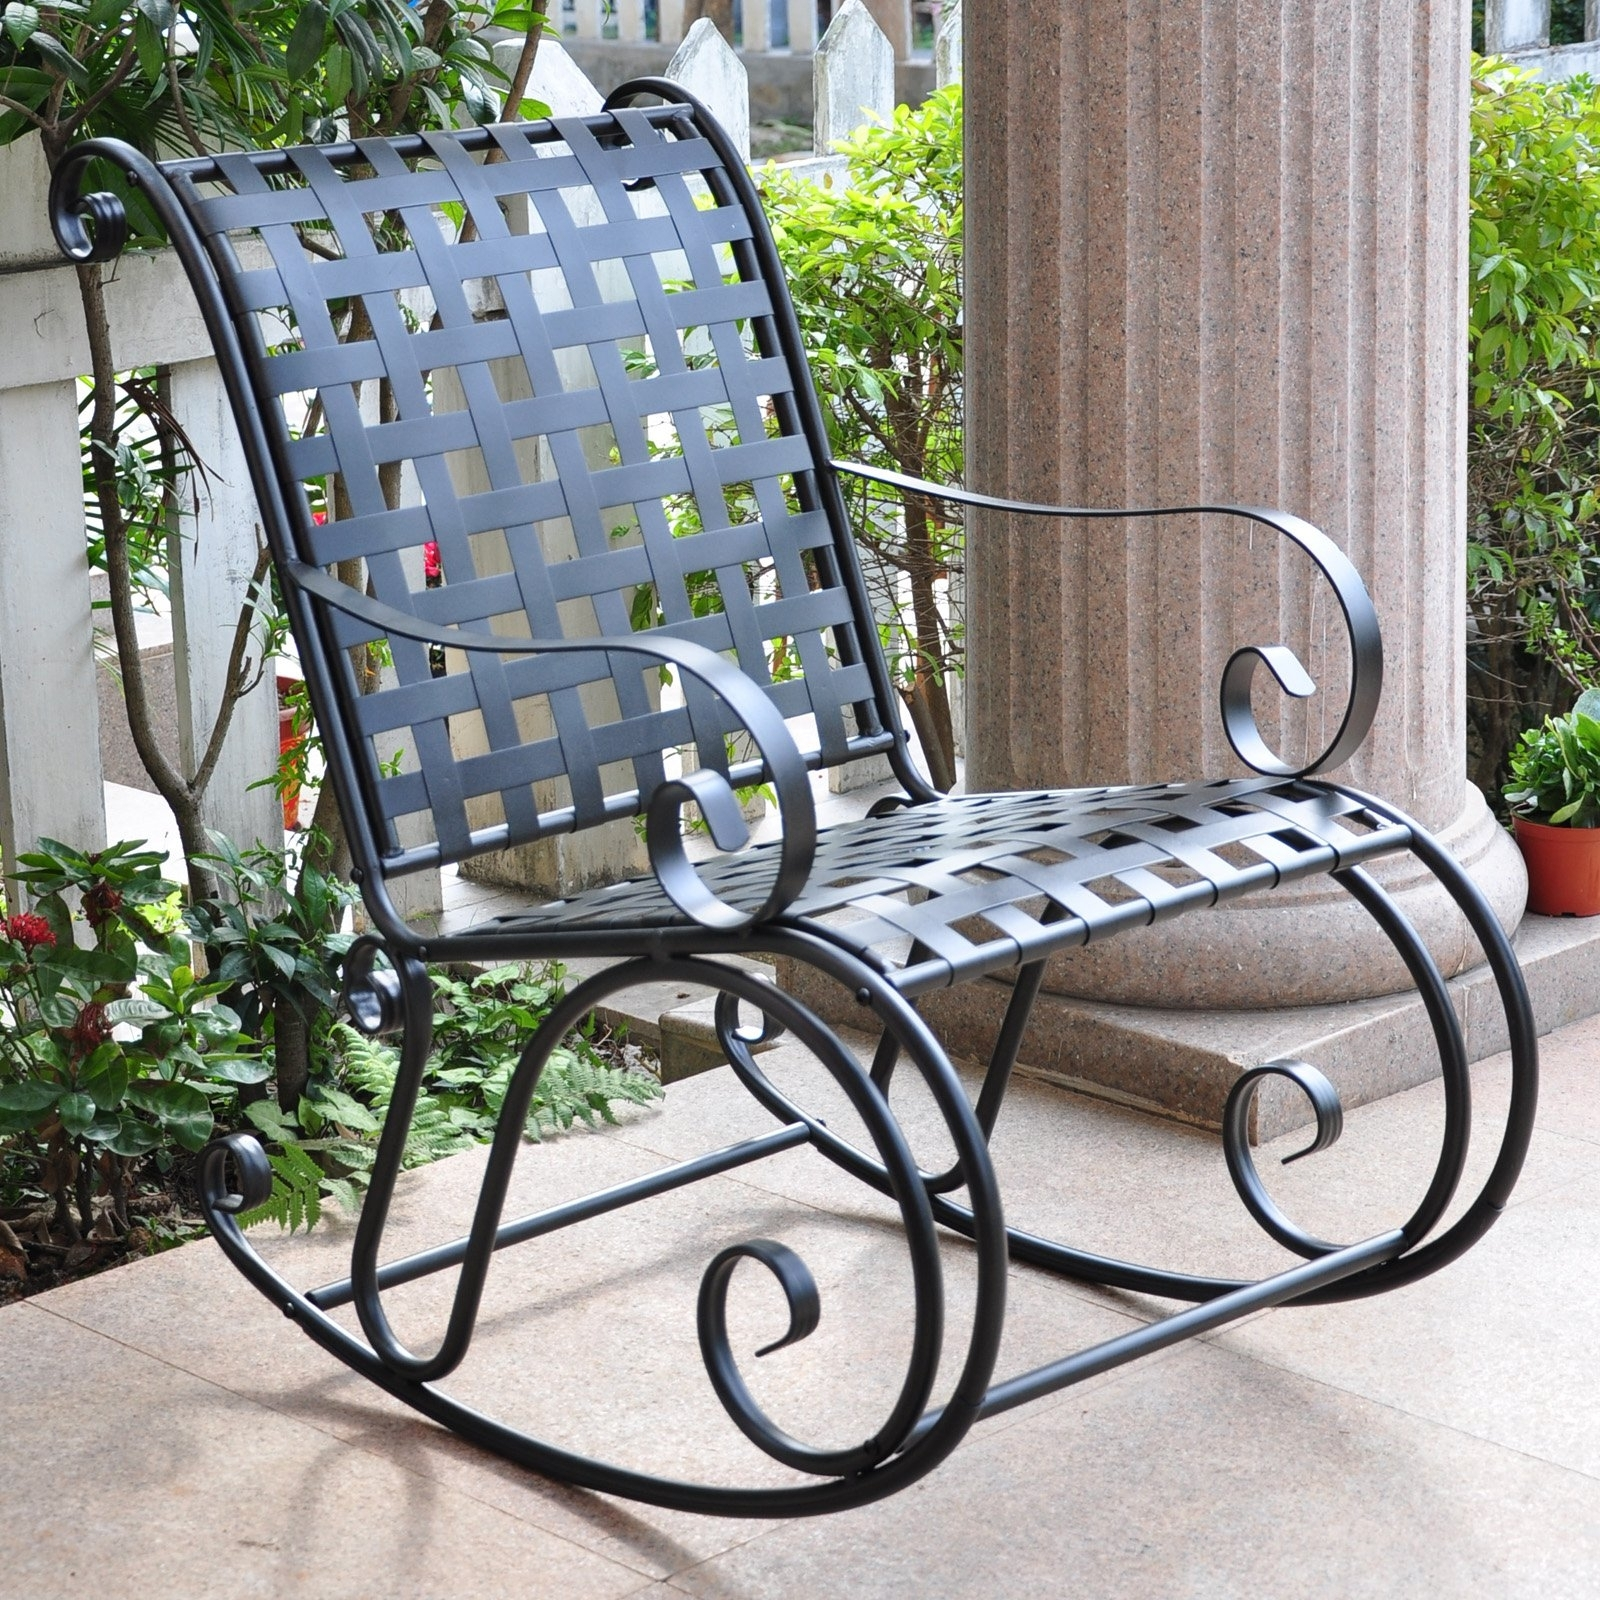 Wrought Iron Patio Rocking Chairs In Current Wrought Iron Rocking Chair Outdoor – Chair Design Ideas (View 11 of 15)